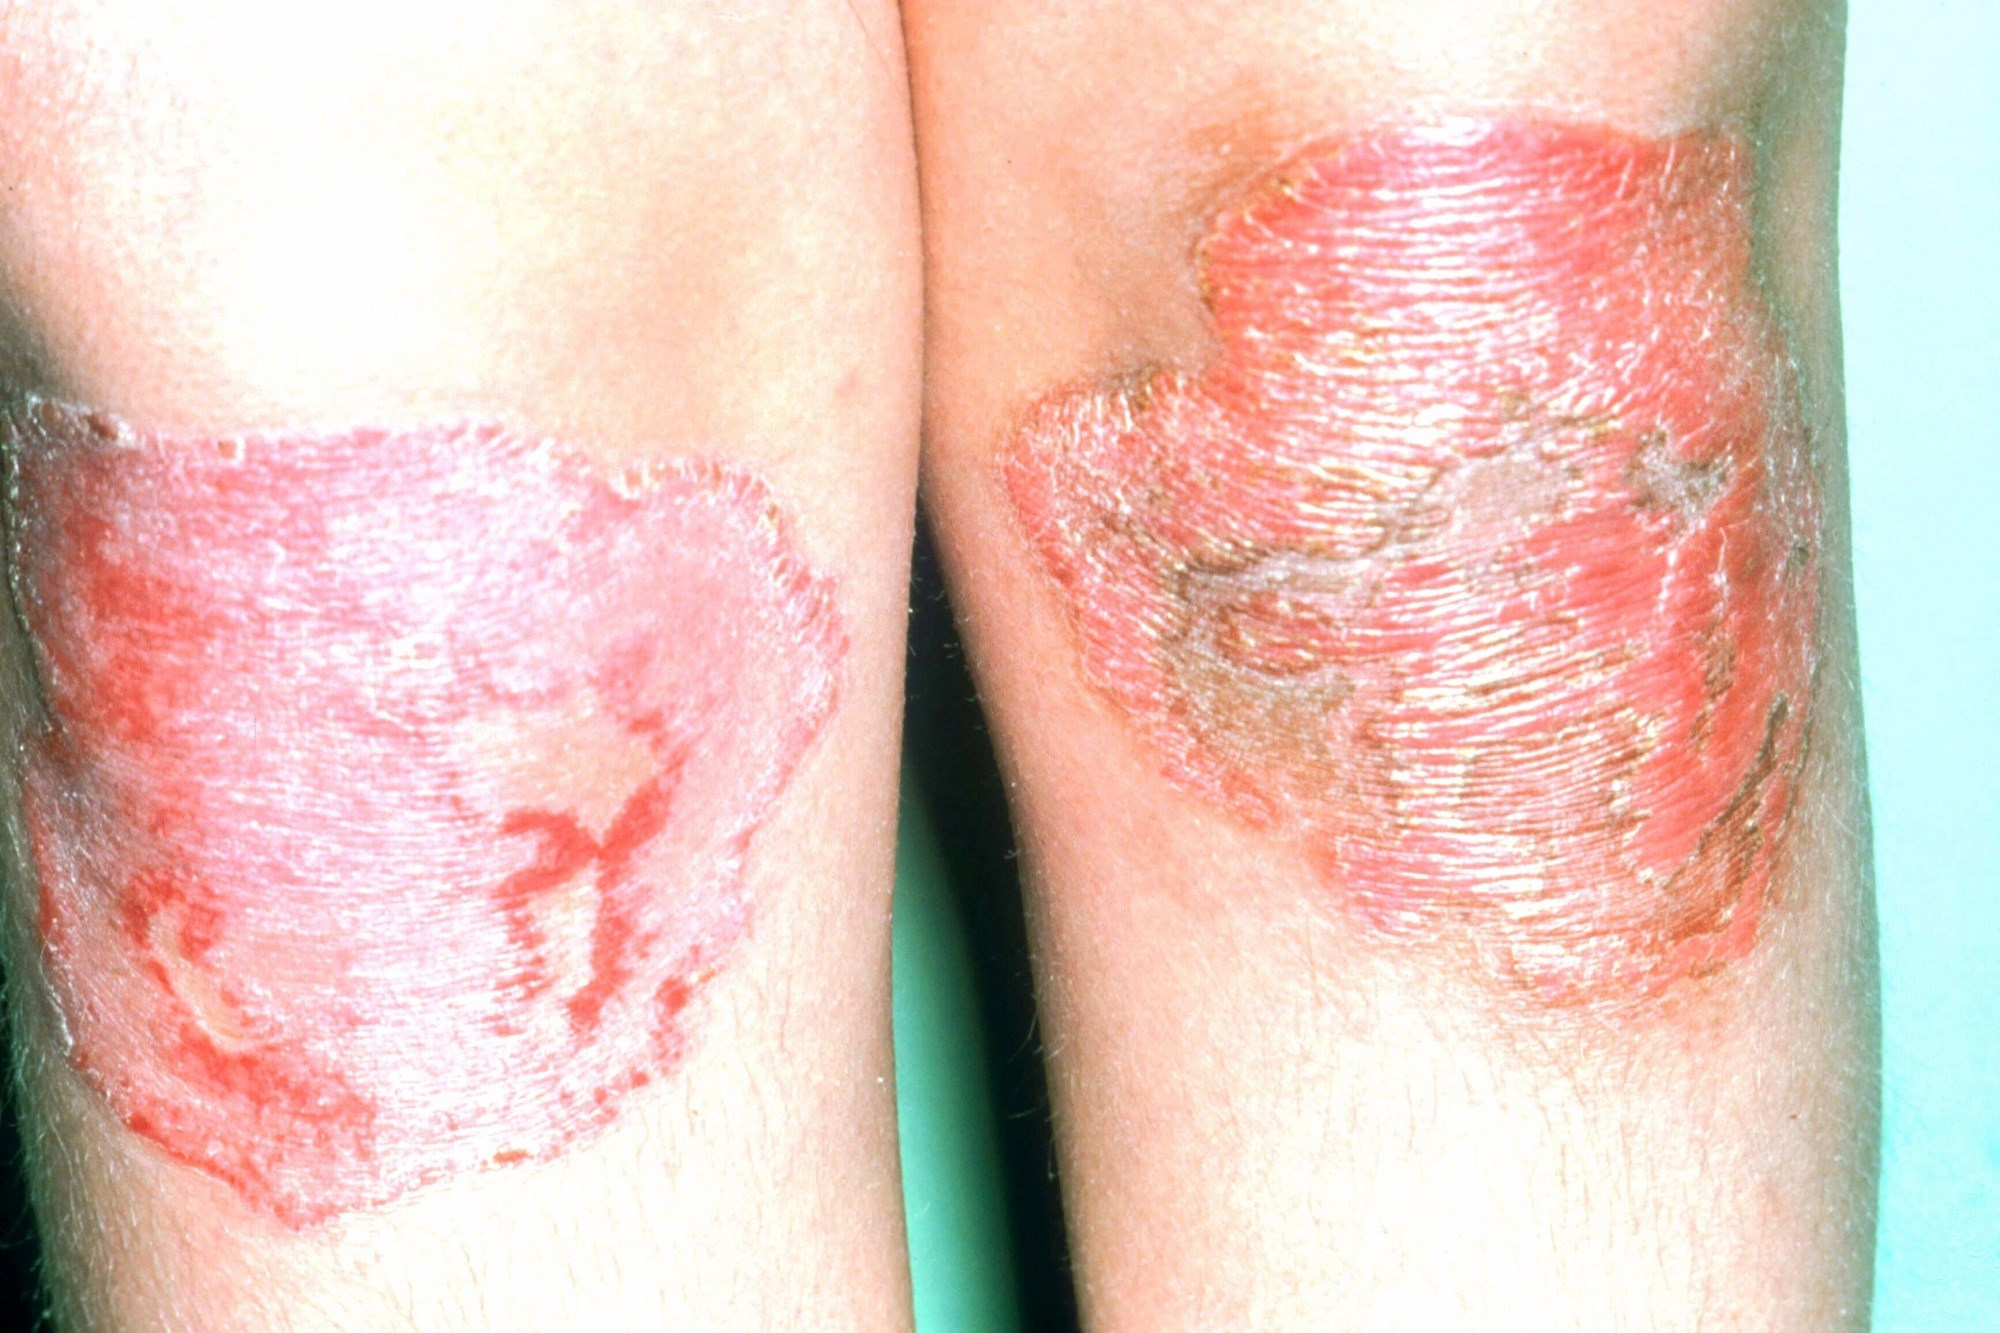 Elevated Mortality Risk in Psoriasis May Be Associated With Comorbidities